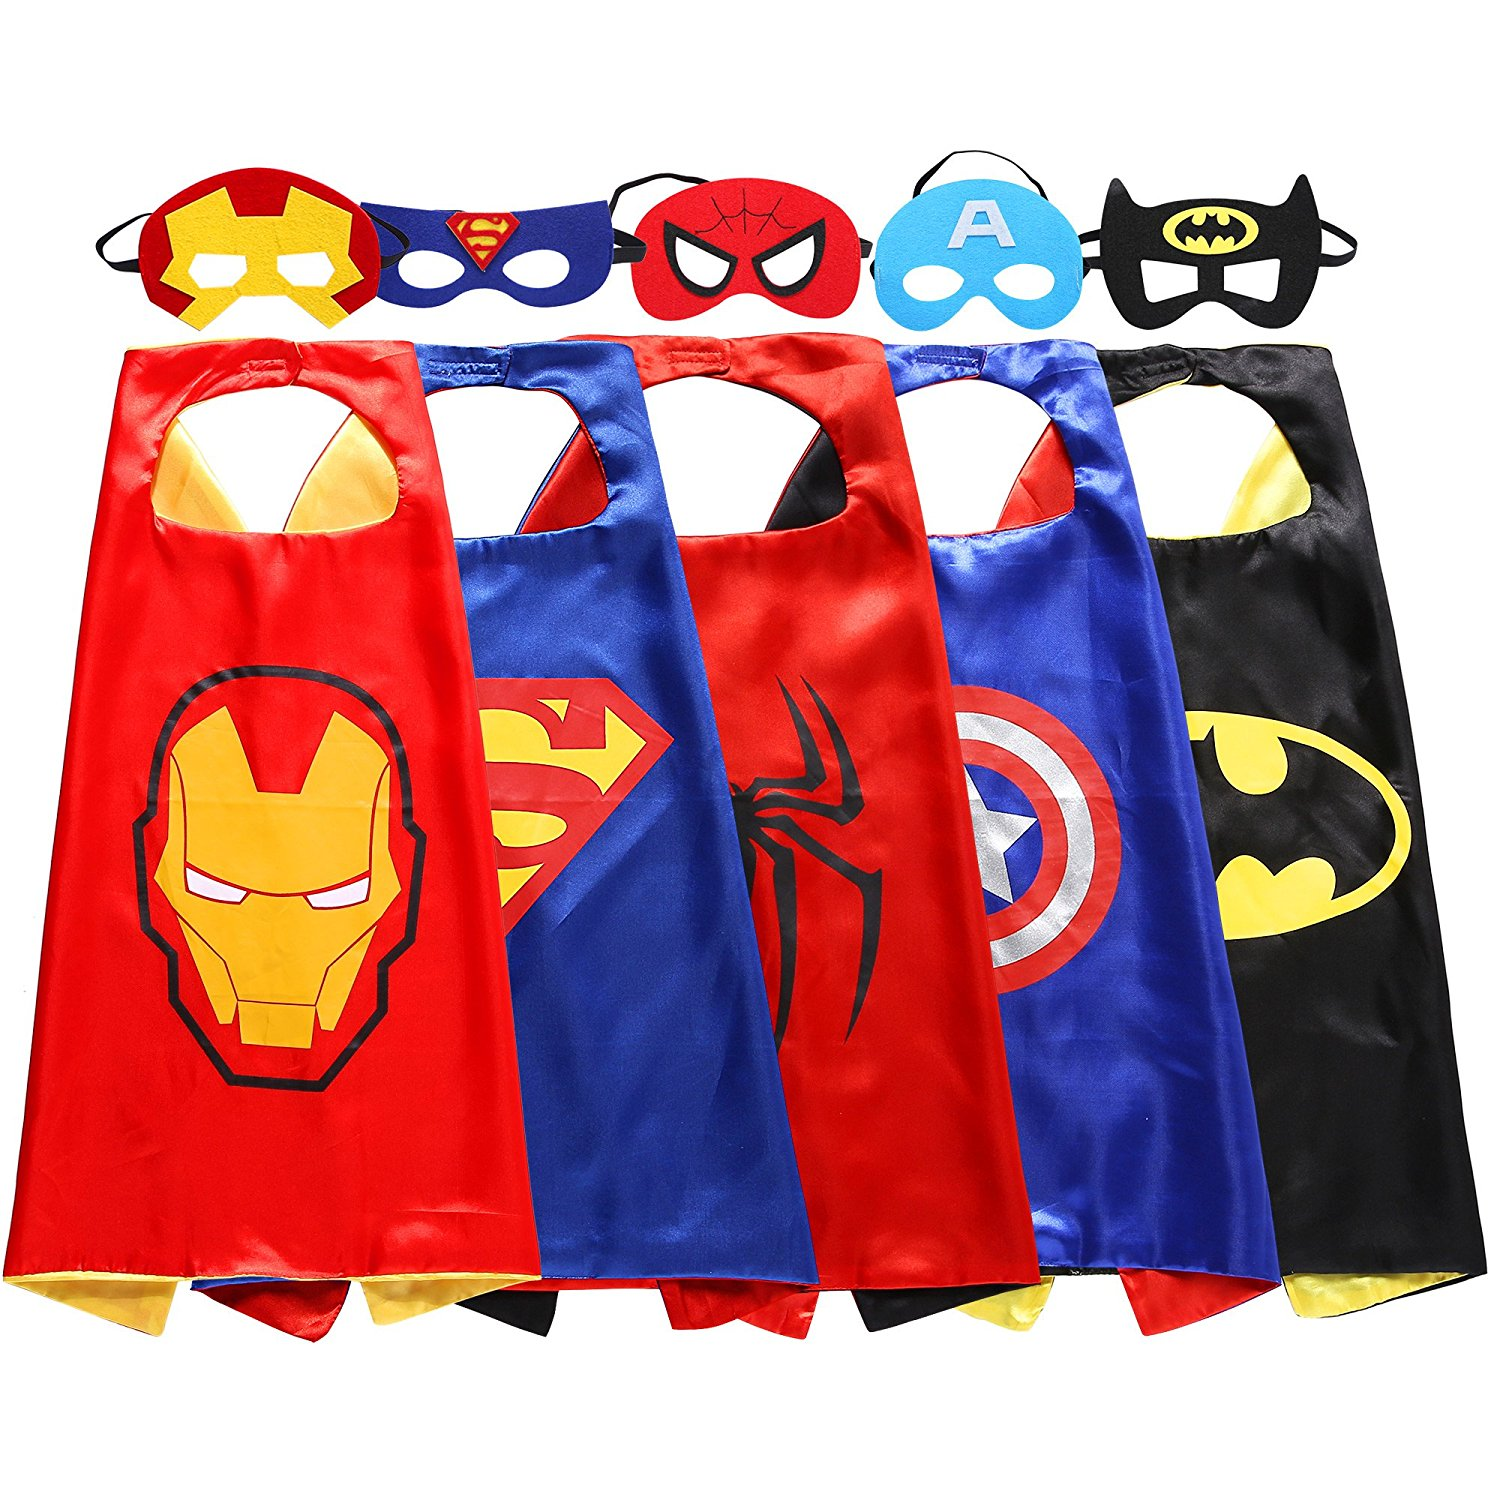 mask and cape sets in superhero theme available in johannesburg